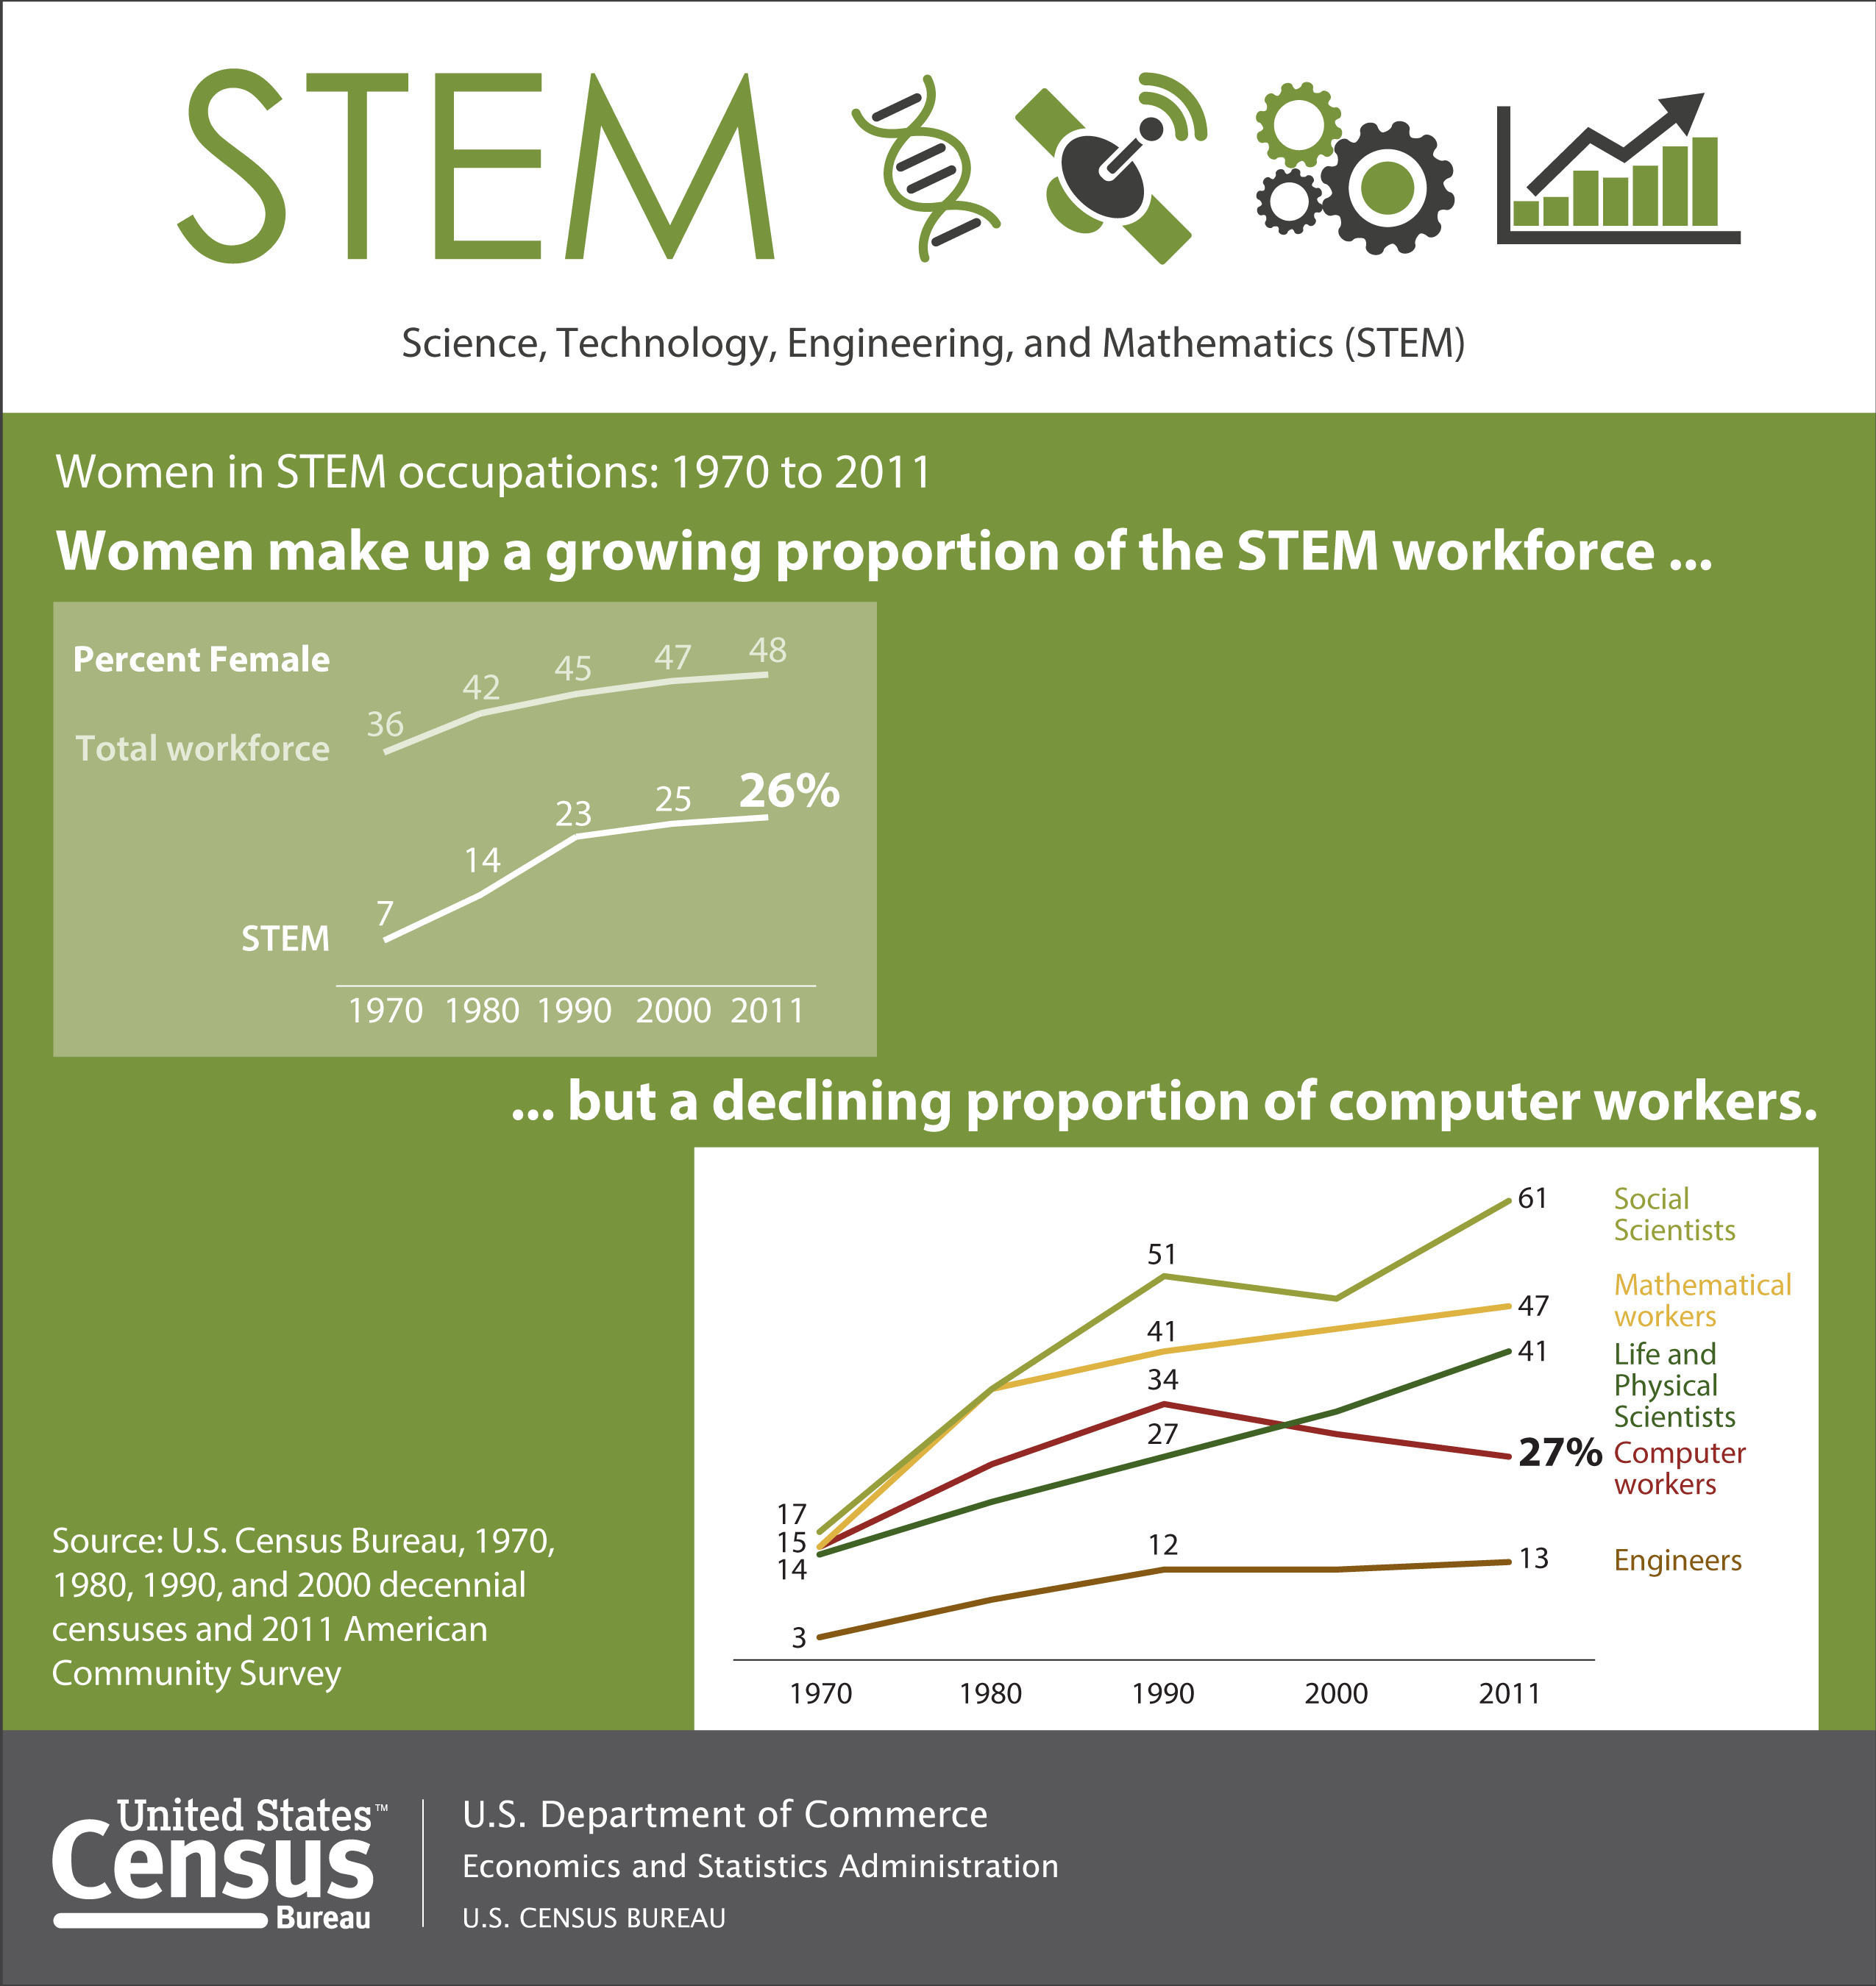 Growth in women's share of science, technology, engineering and mathematics occupations - commonly referred to as STEM jobs - has slowed since the 1990s, according to a U.S. Census Bureau report released today. Women's employment in STEM has slowed because their share in computer occupations declined to 27 percent in 2011 after reaching a high of 34 percent in 1990. More: http://www.census.gov/newsroom/releases/archives/employment_occupations/cb13-162.html  (PRNewsFoto/U.S. Census Bureau)